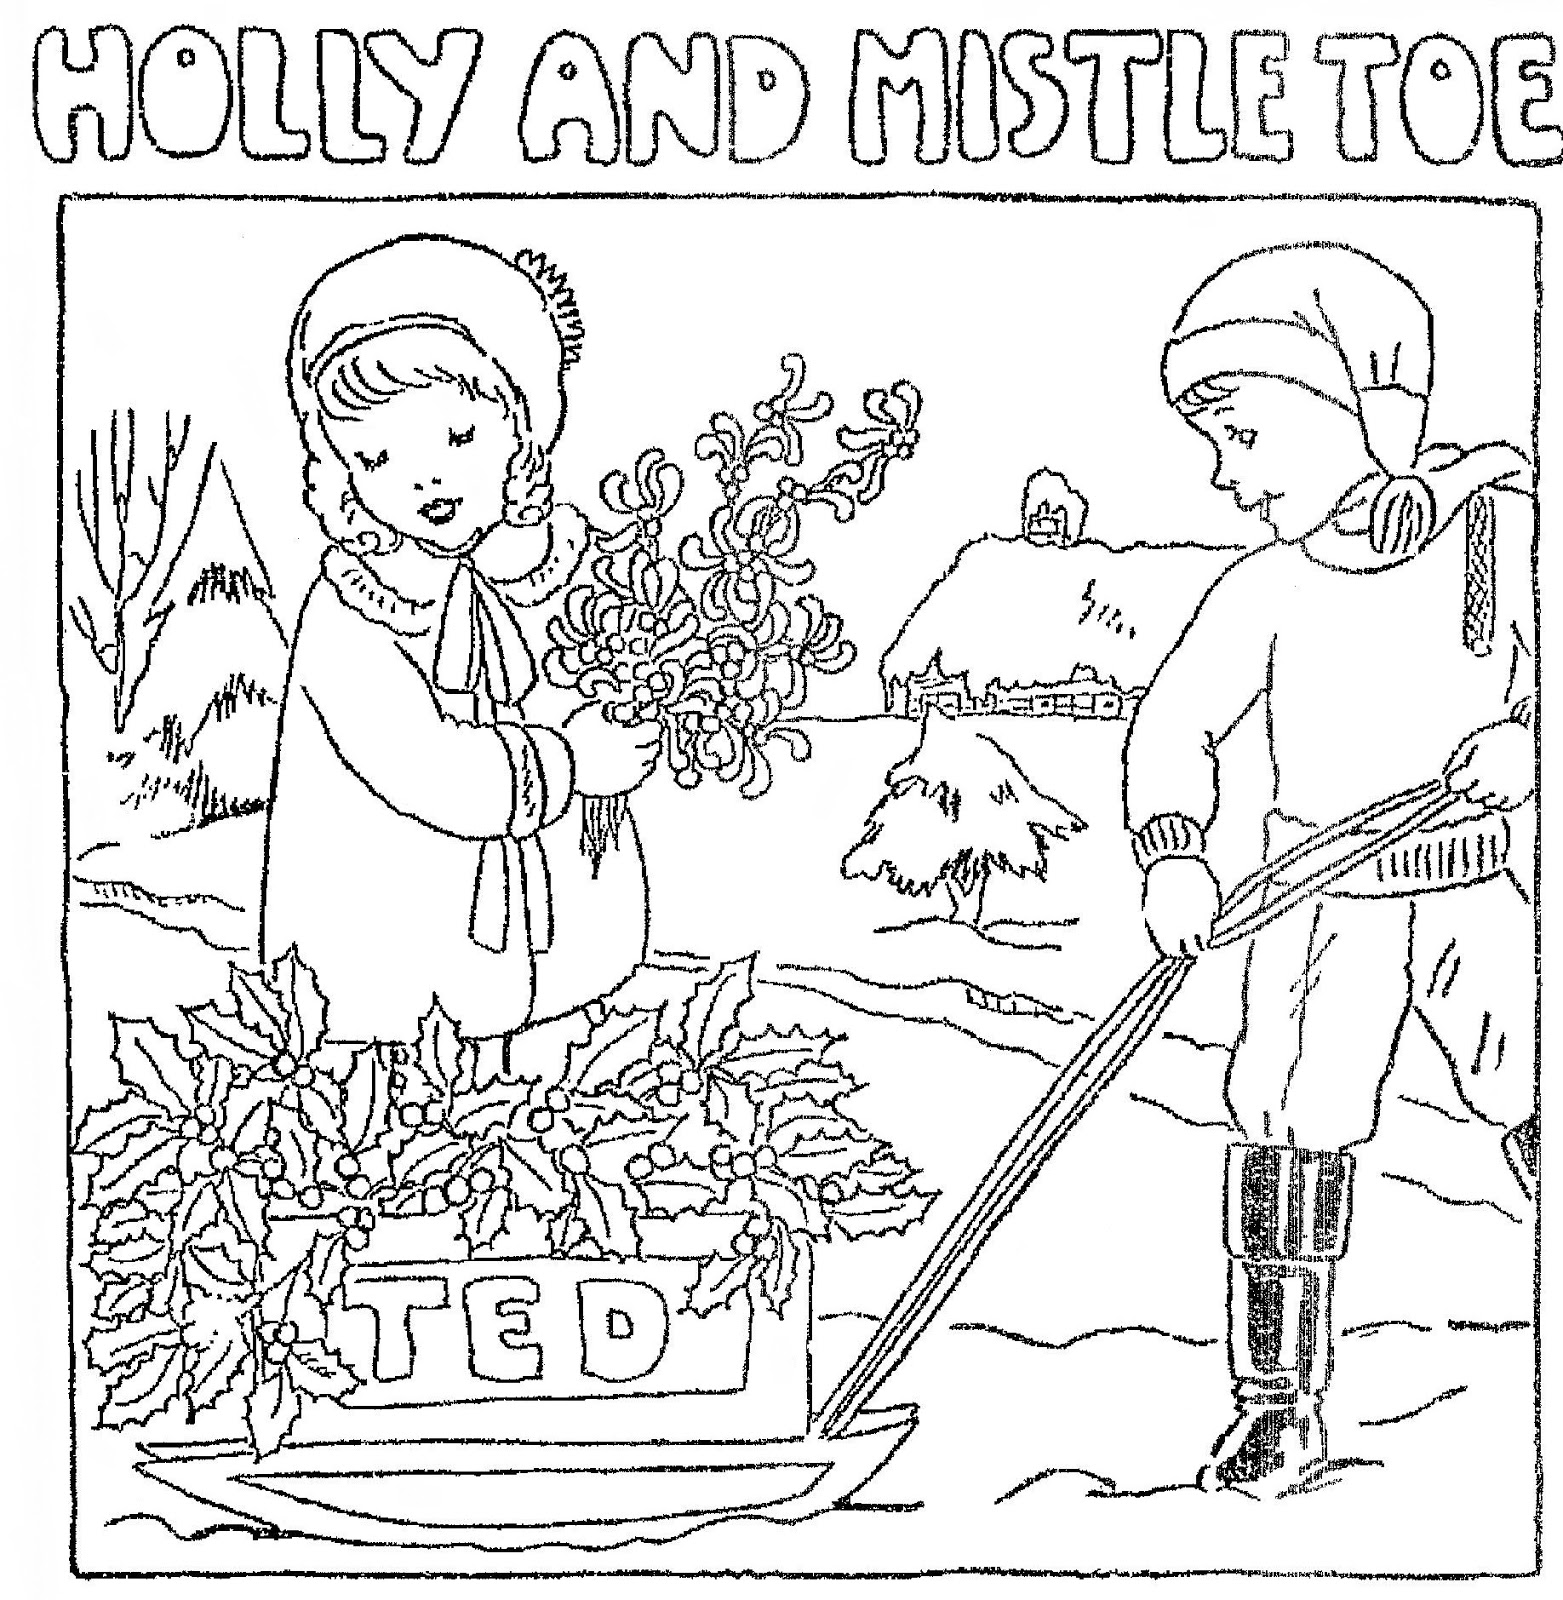 Mostly Paper Dolls Too!: HOLLY and MISTLETOE